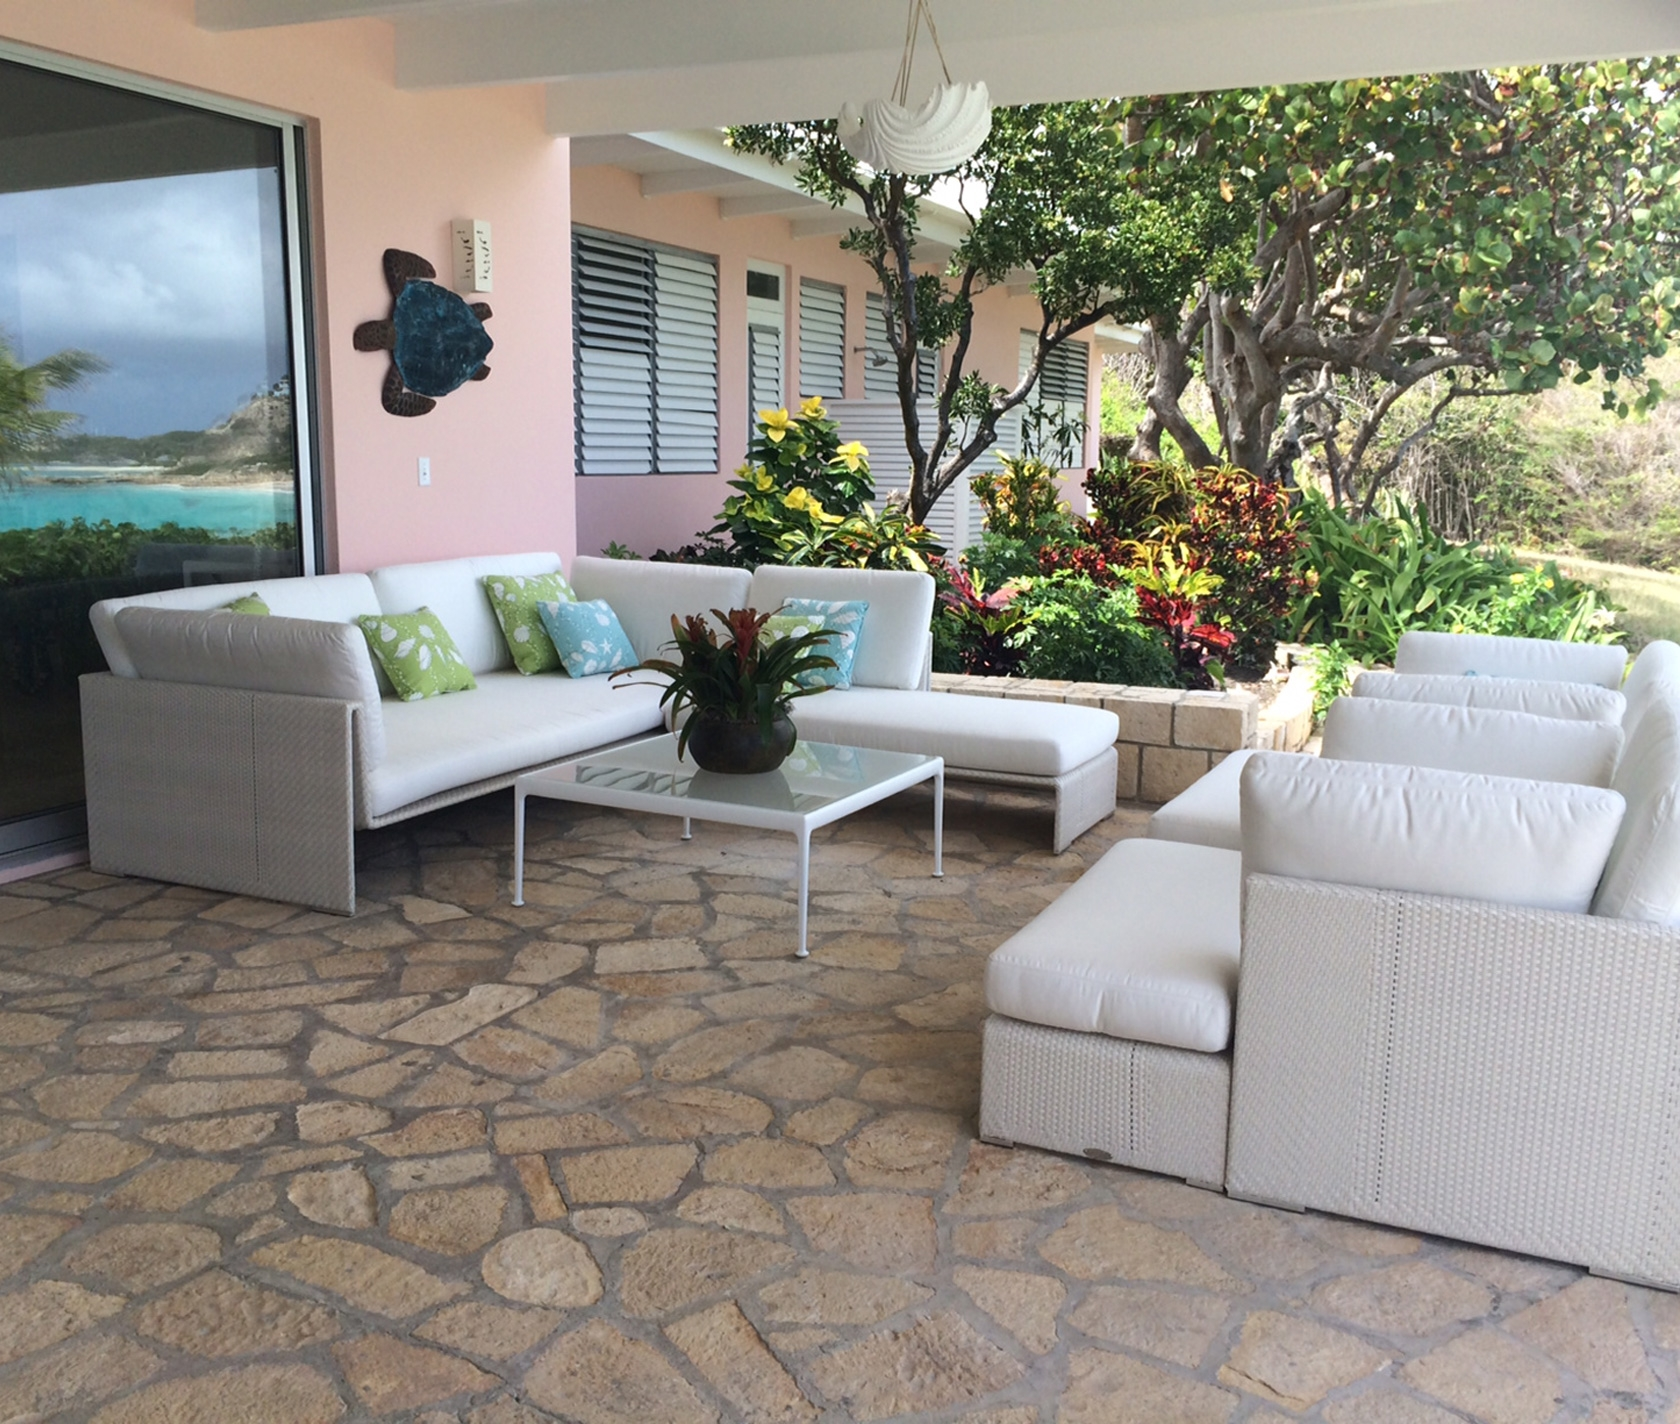 Antigua, St. Johns, Modern House Interior Design Patio